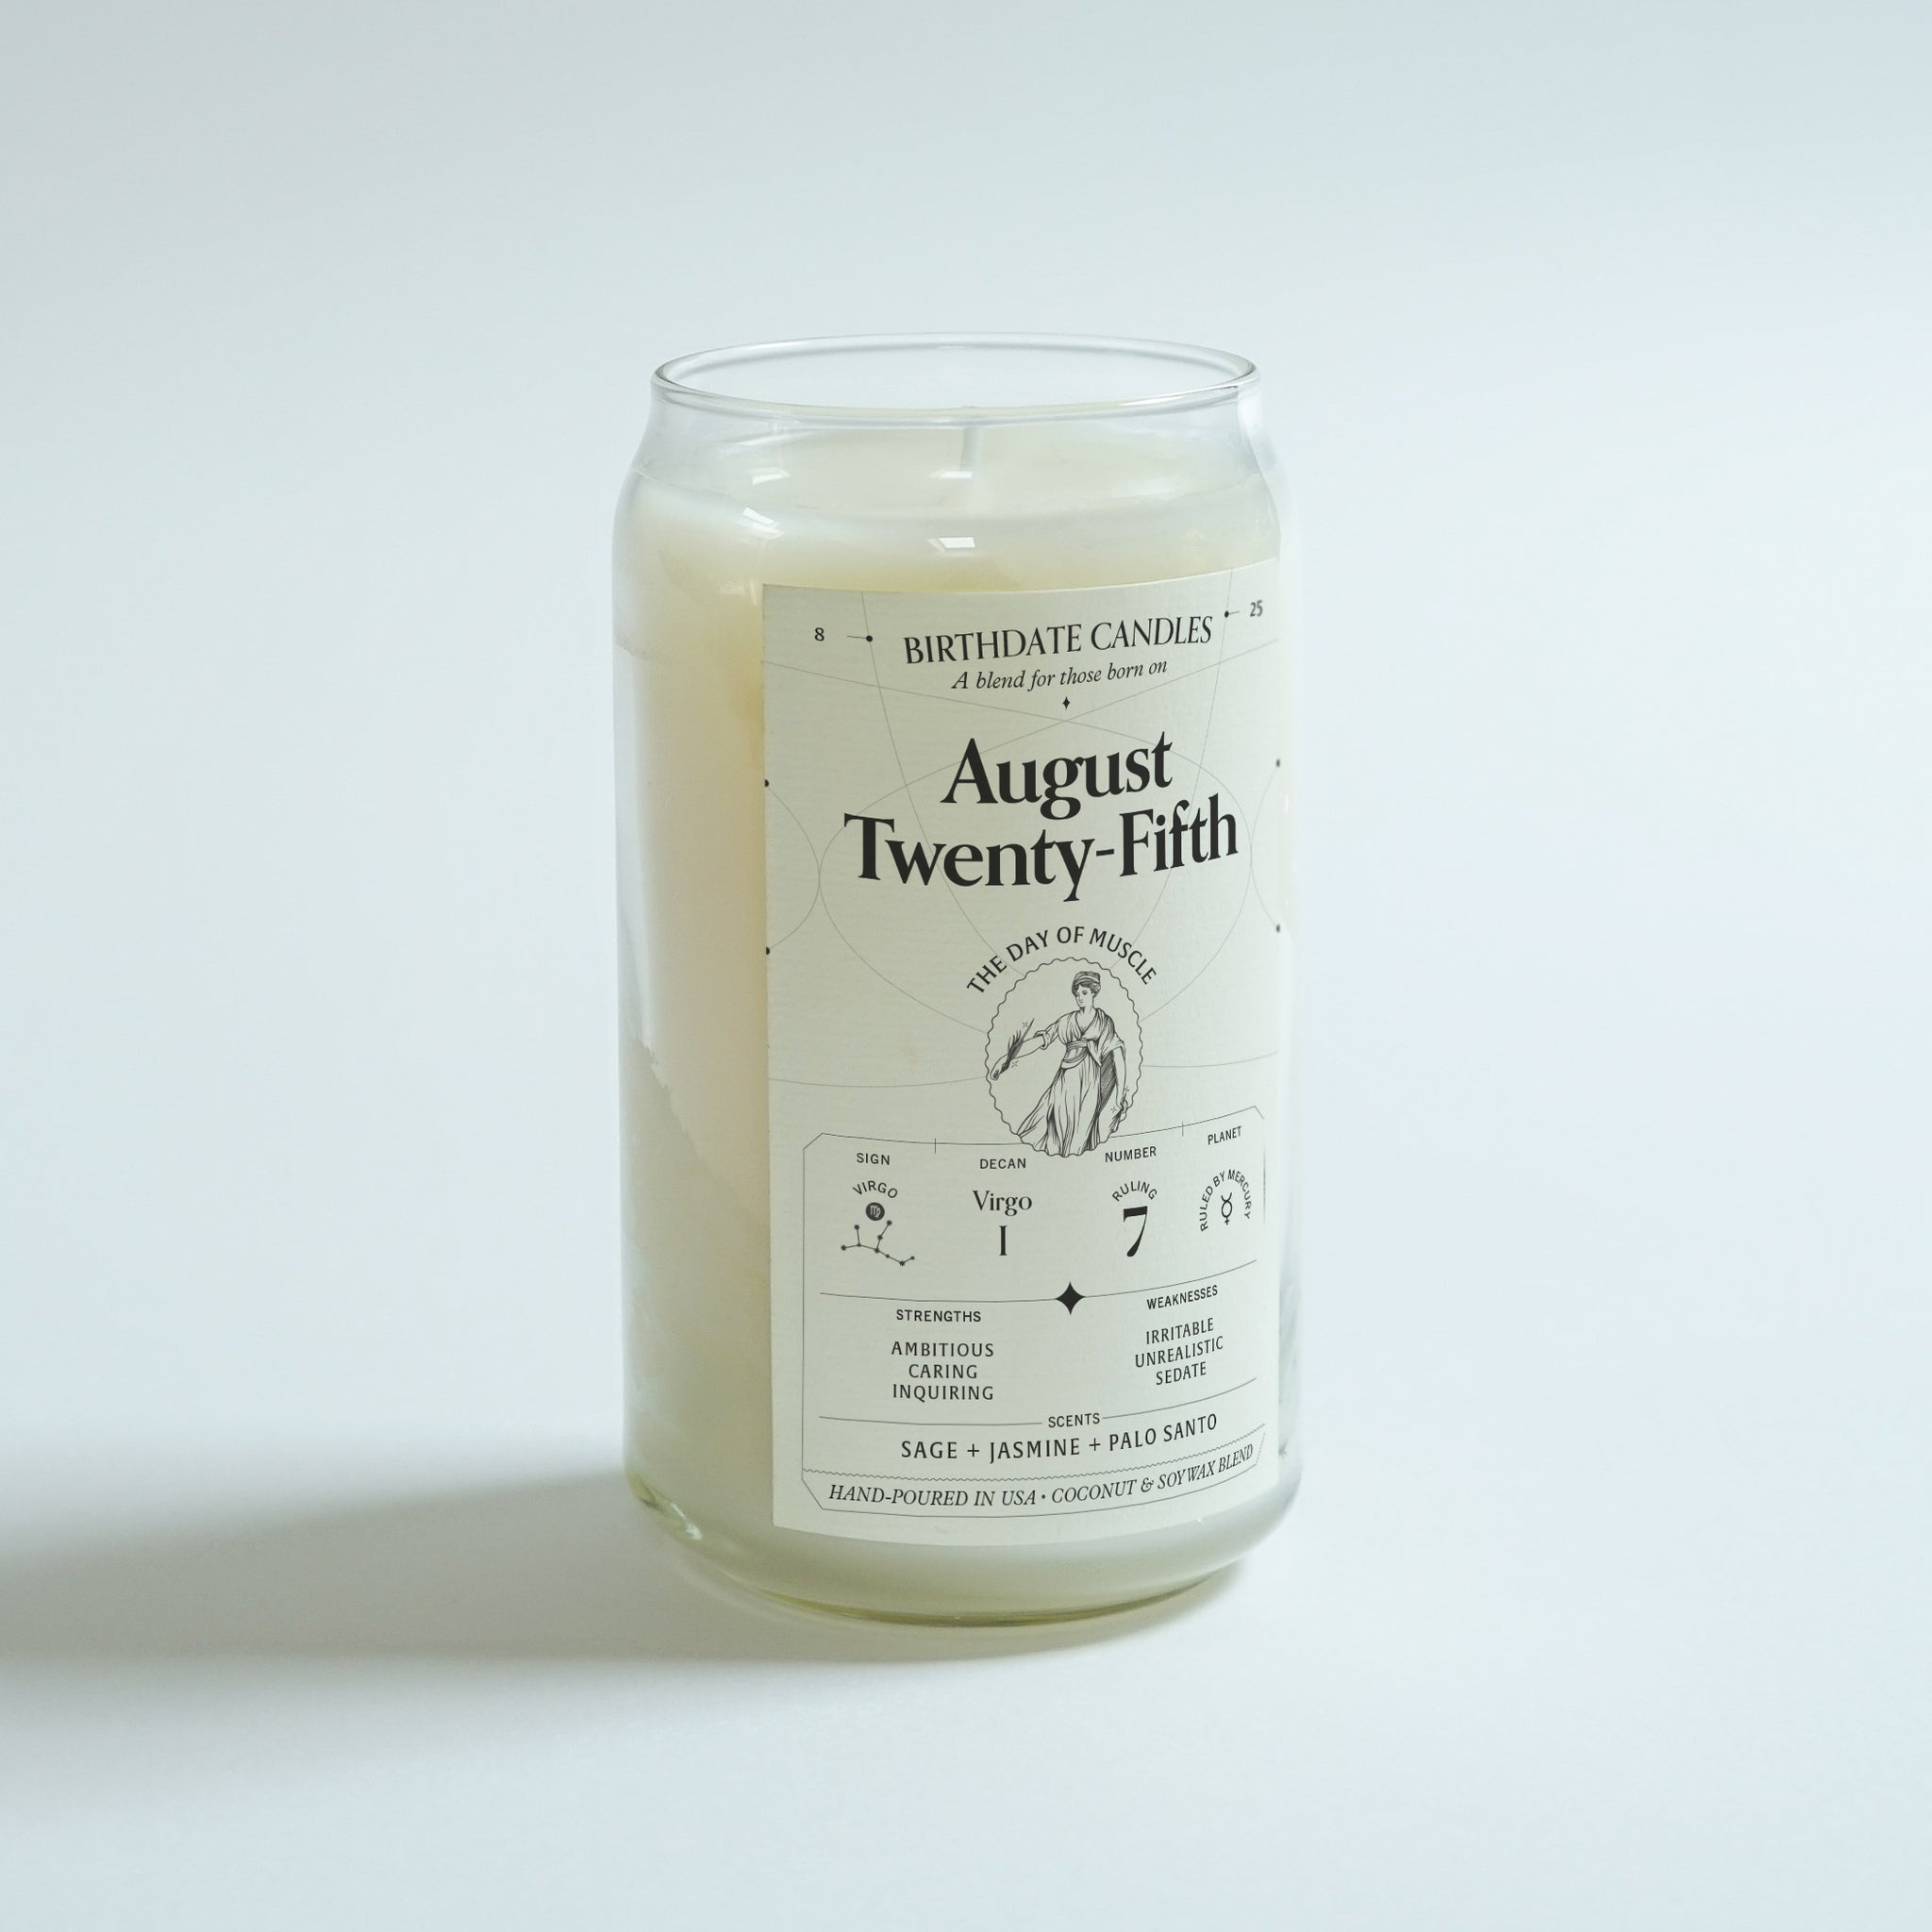 The August Twenty-Fifth Candle